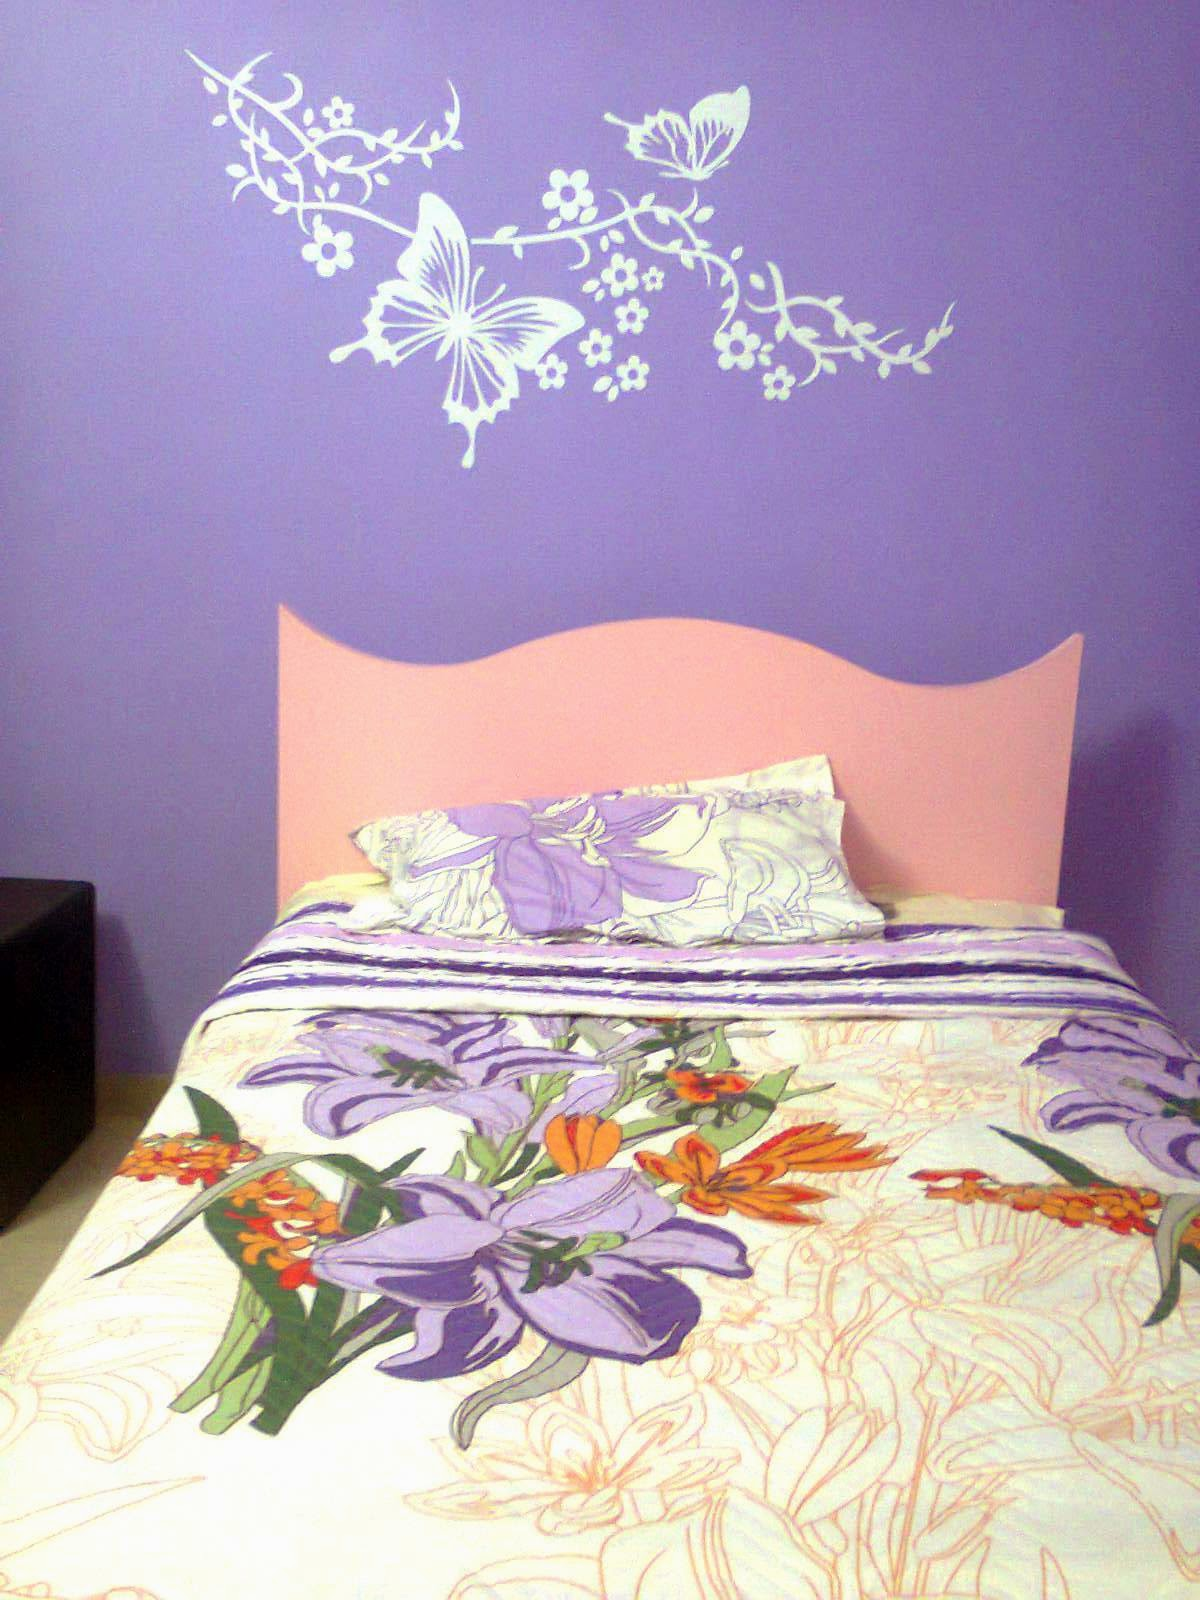 Bedroom wall decal from Kakshyaachitra